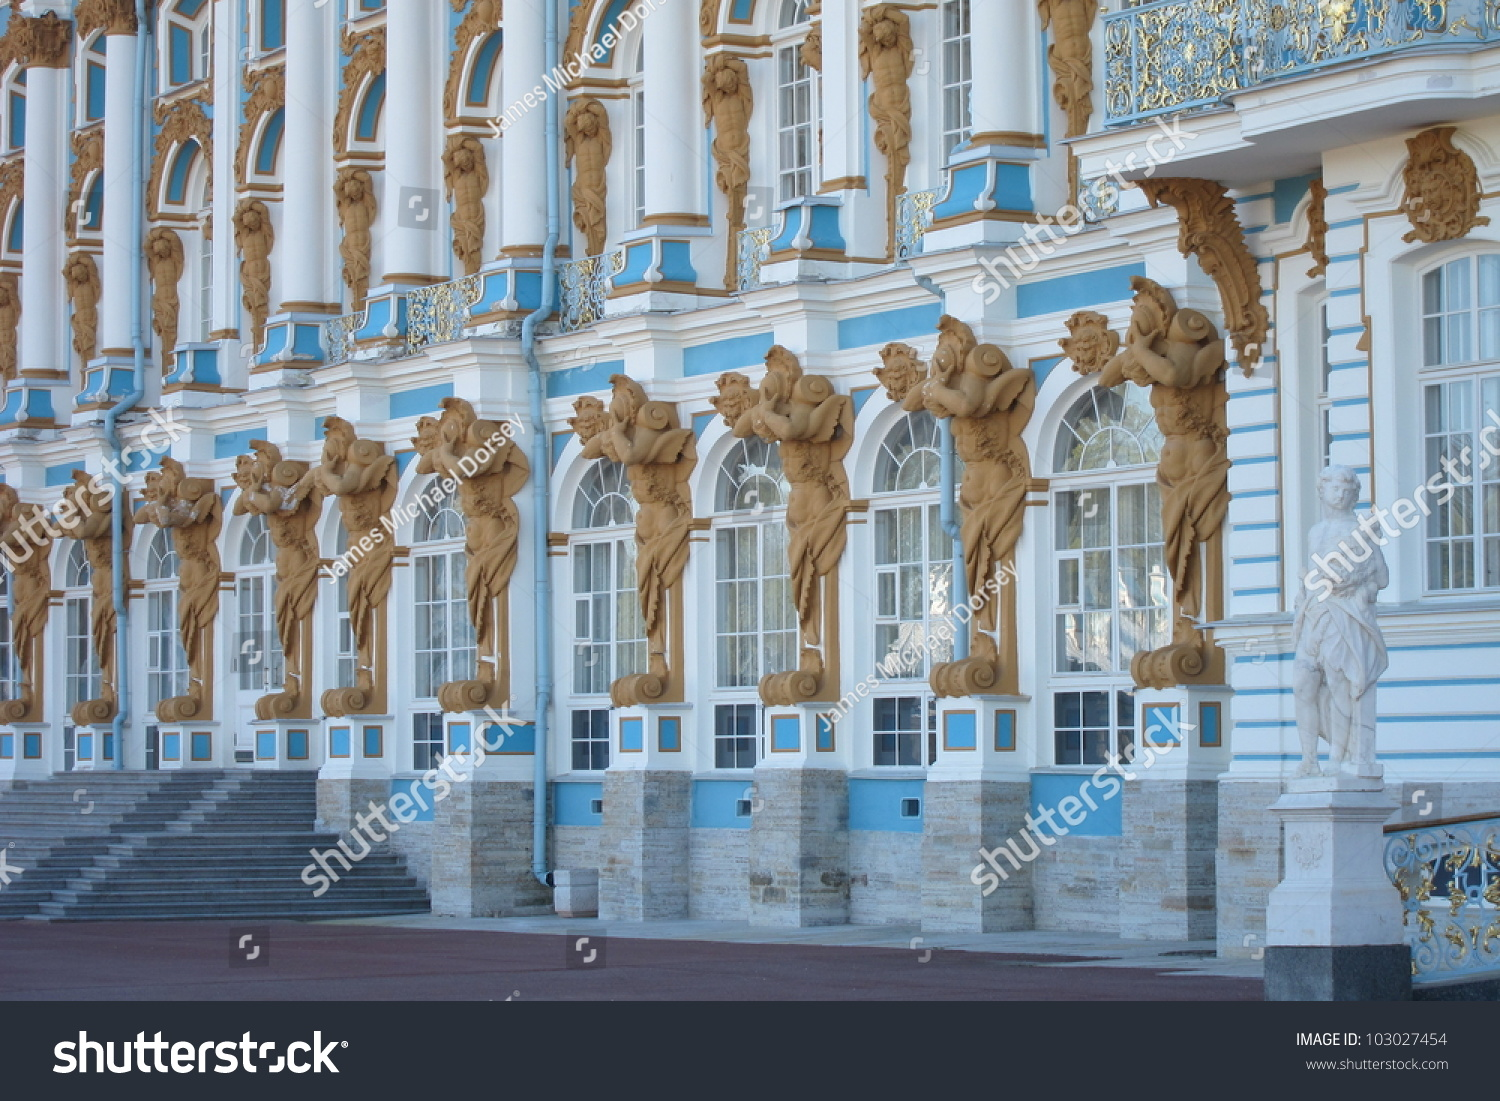 the life and times of the press of all russia catherine the great In 1744, she arrived in russia, as the grand duchess catherine alekseyevna, and married peter, grandson of peter the great and heir to the throne russia at the time was ruled by peter's mother, the empress elizabeth.